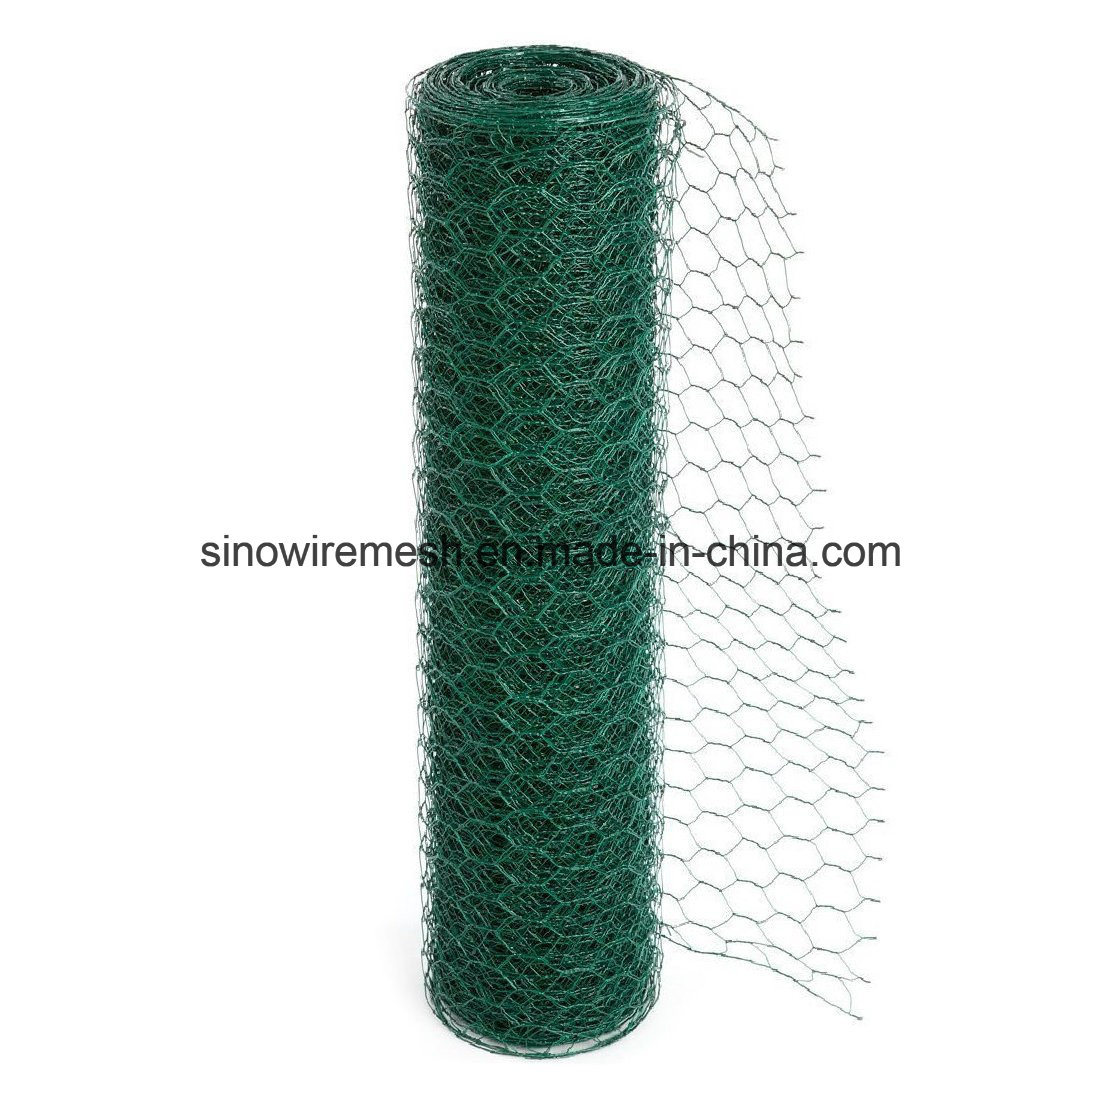 China Chicken Wire Mesh Hexagonal Wire Fencing Poultry Wire Netting ...